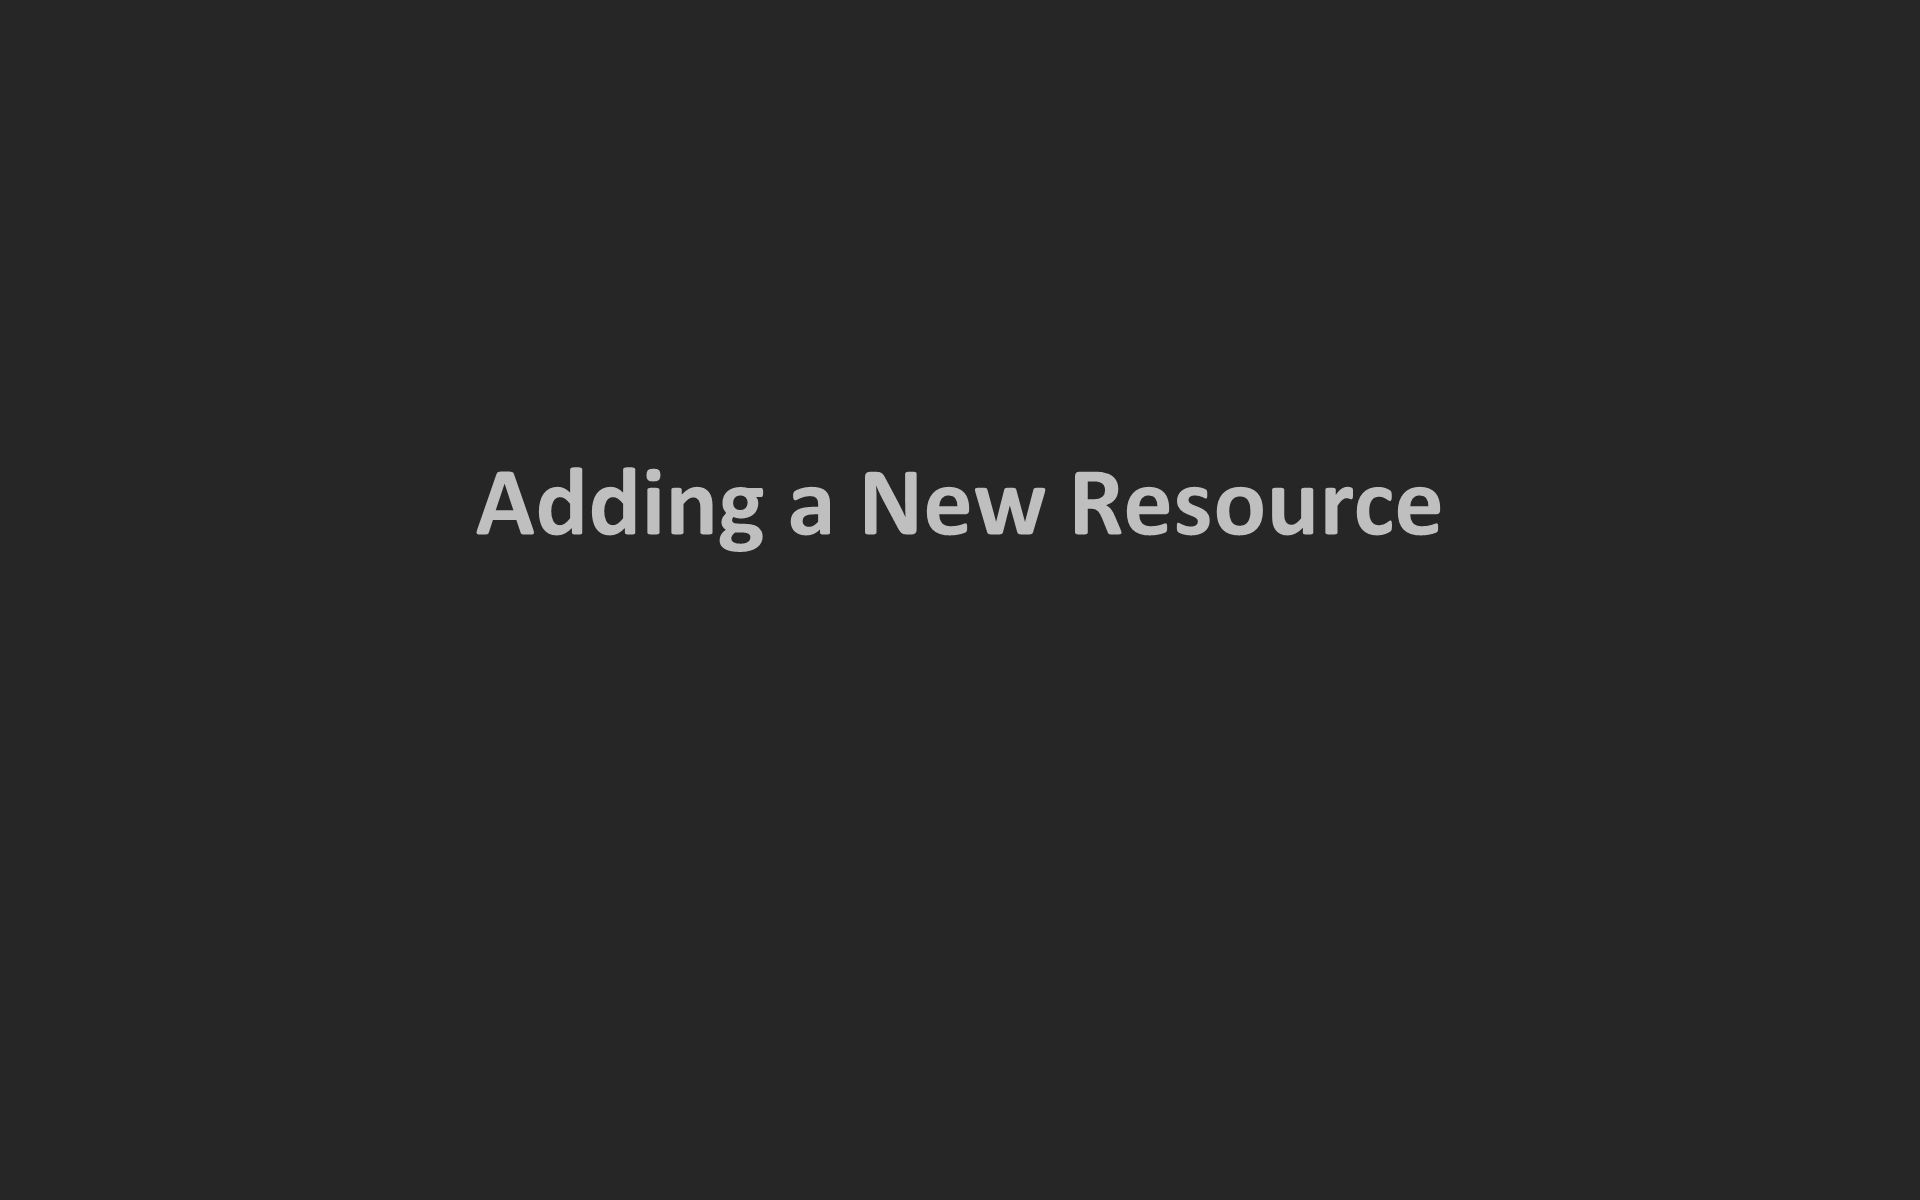 Adding a New Resource